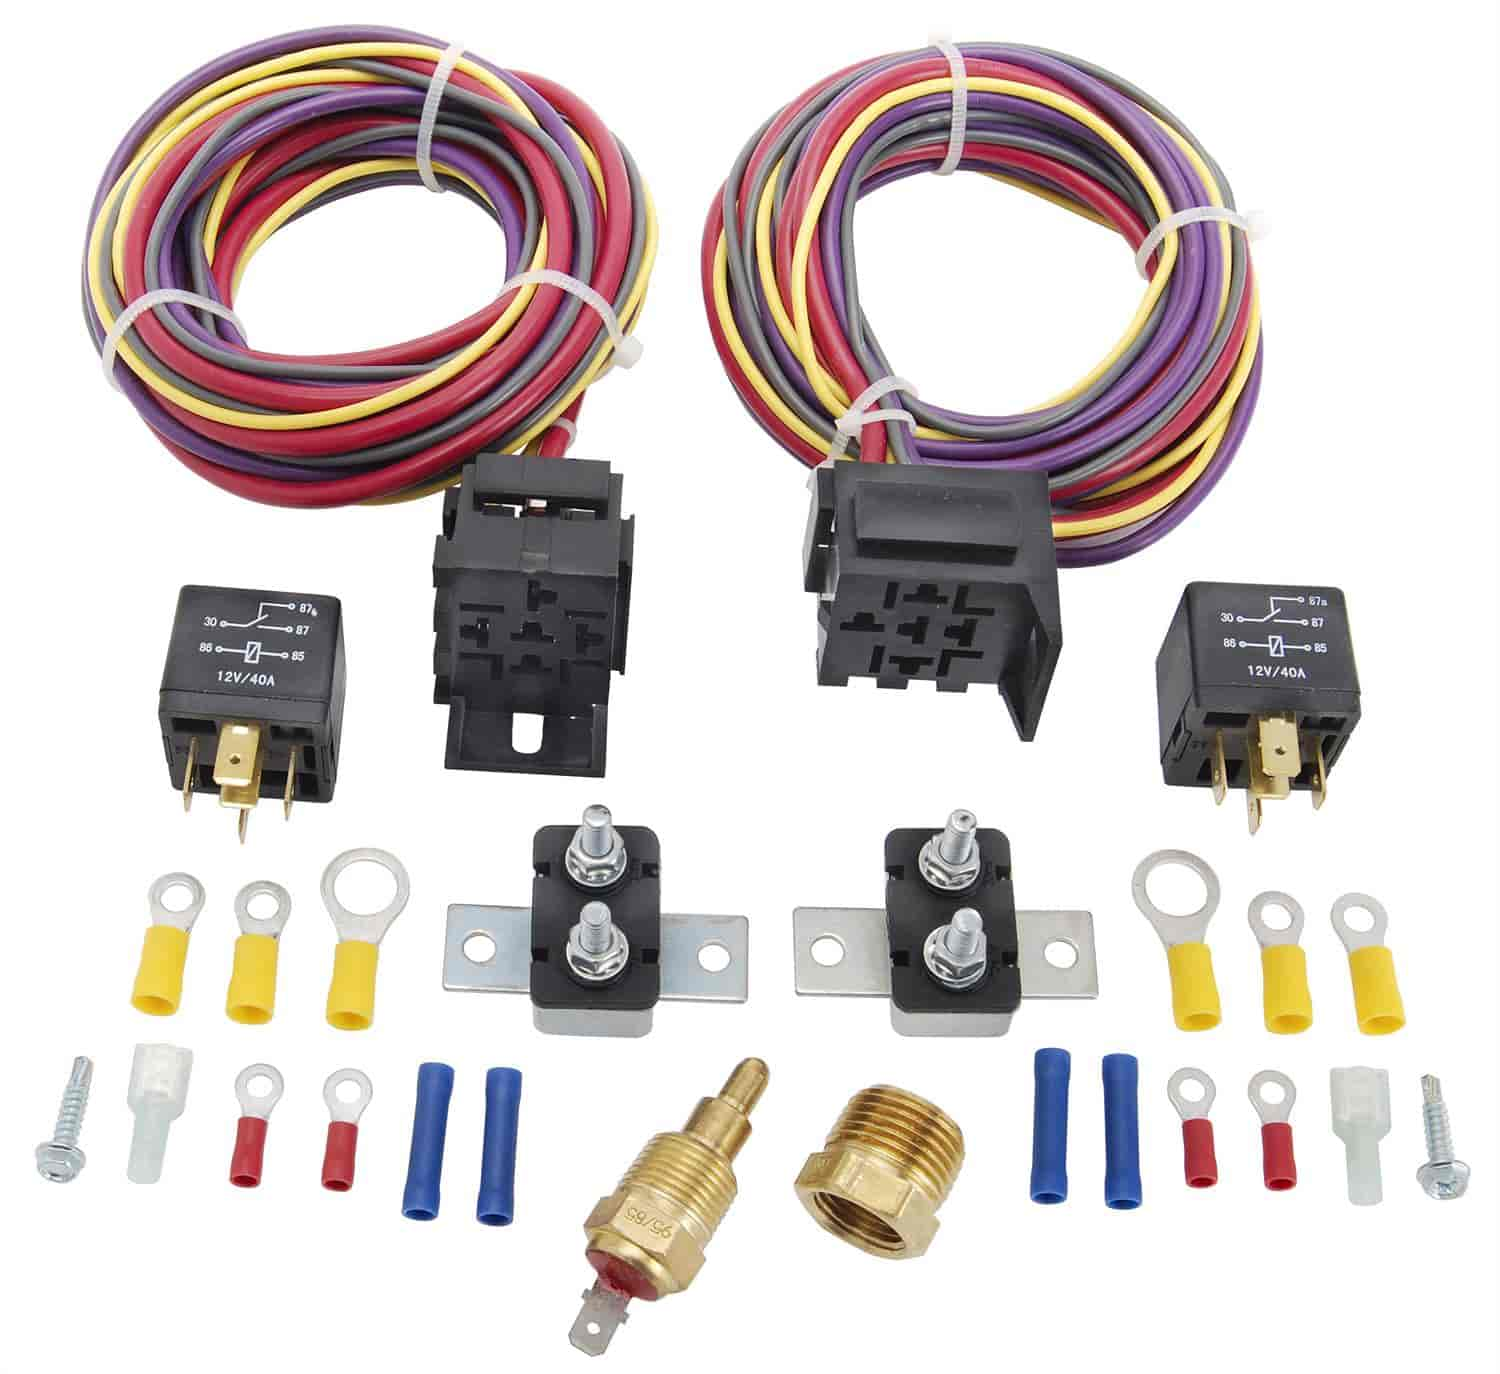 555 10571 jegs performance products 10571 dual fan wiring harness & relay VW Wiring Harness Kits at eliteediting.co